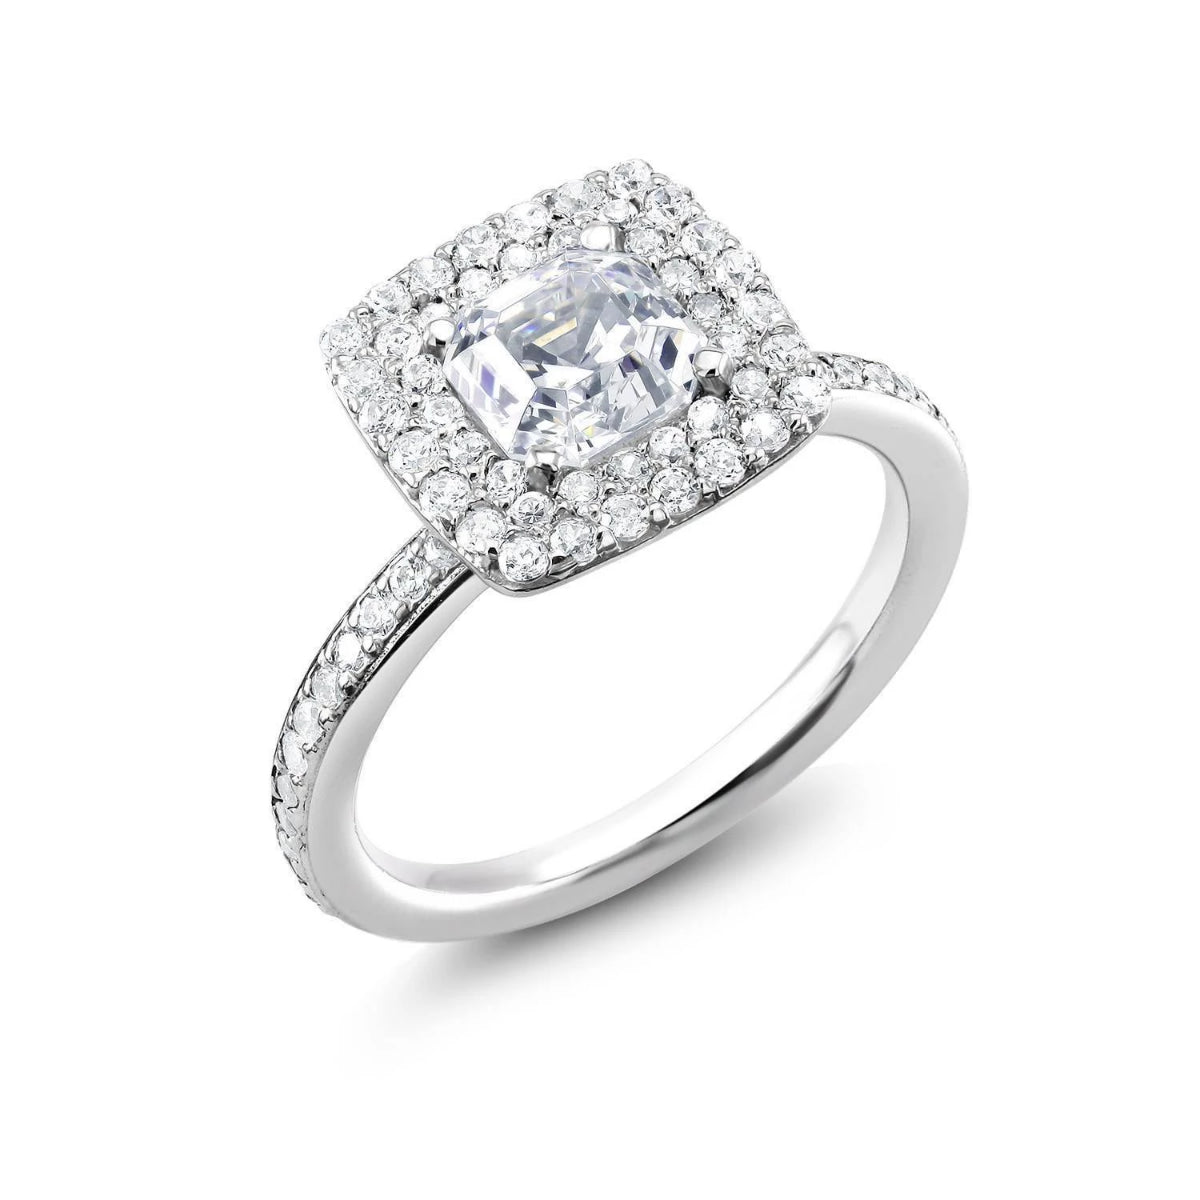 rings platinum product jewellery diamond ring raine turgeon engagement